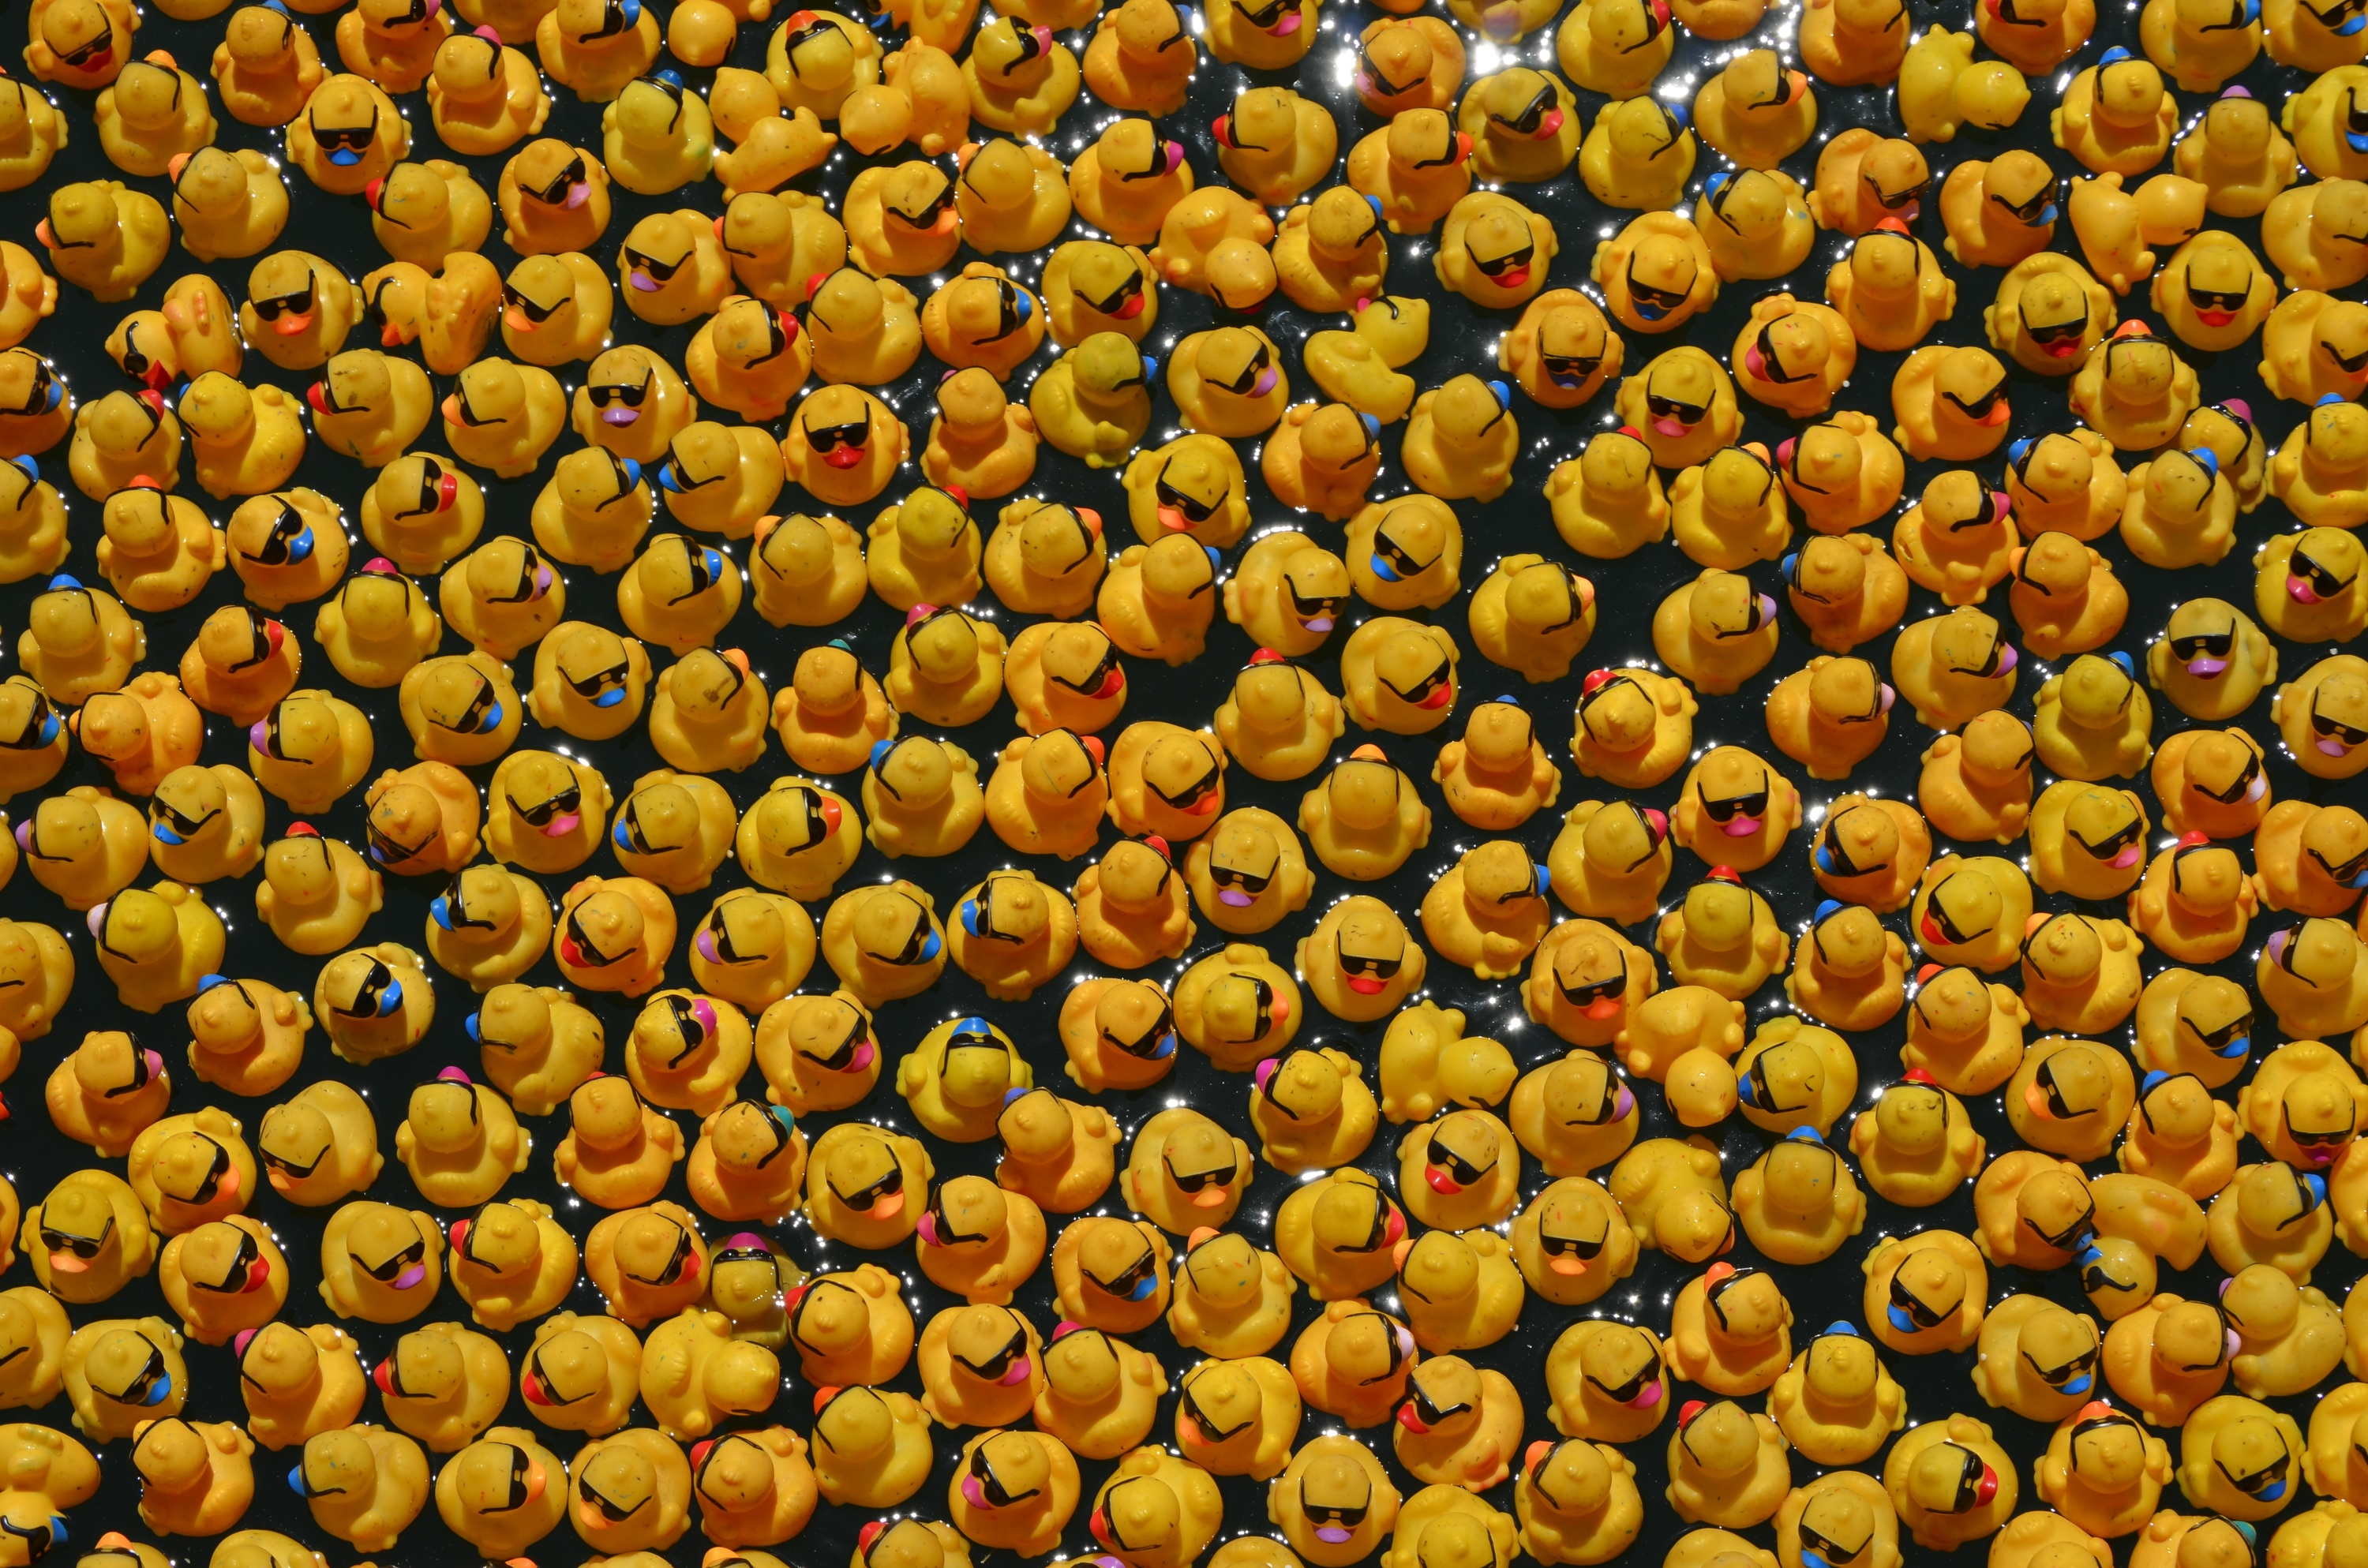 More than 50,000 yellow rubber ducks will set sail in the Chicago ...